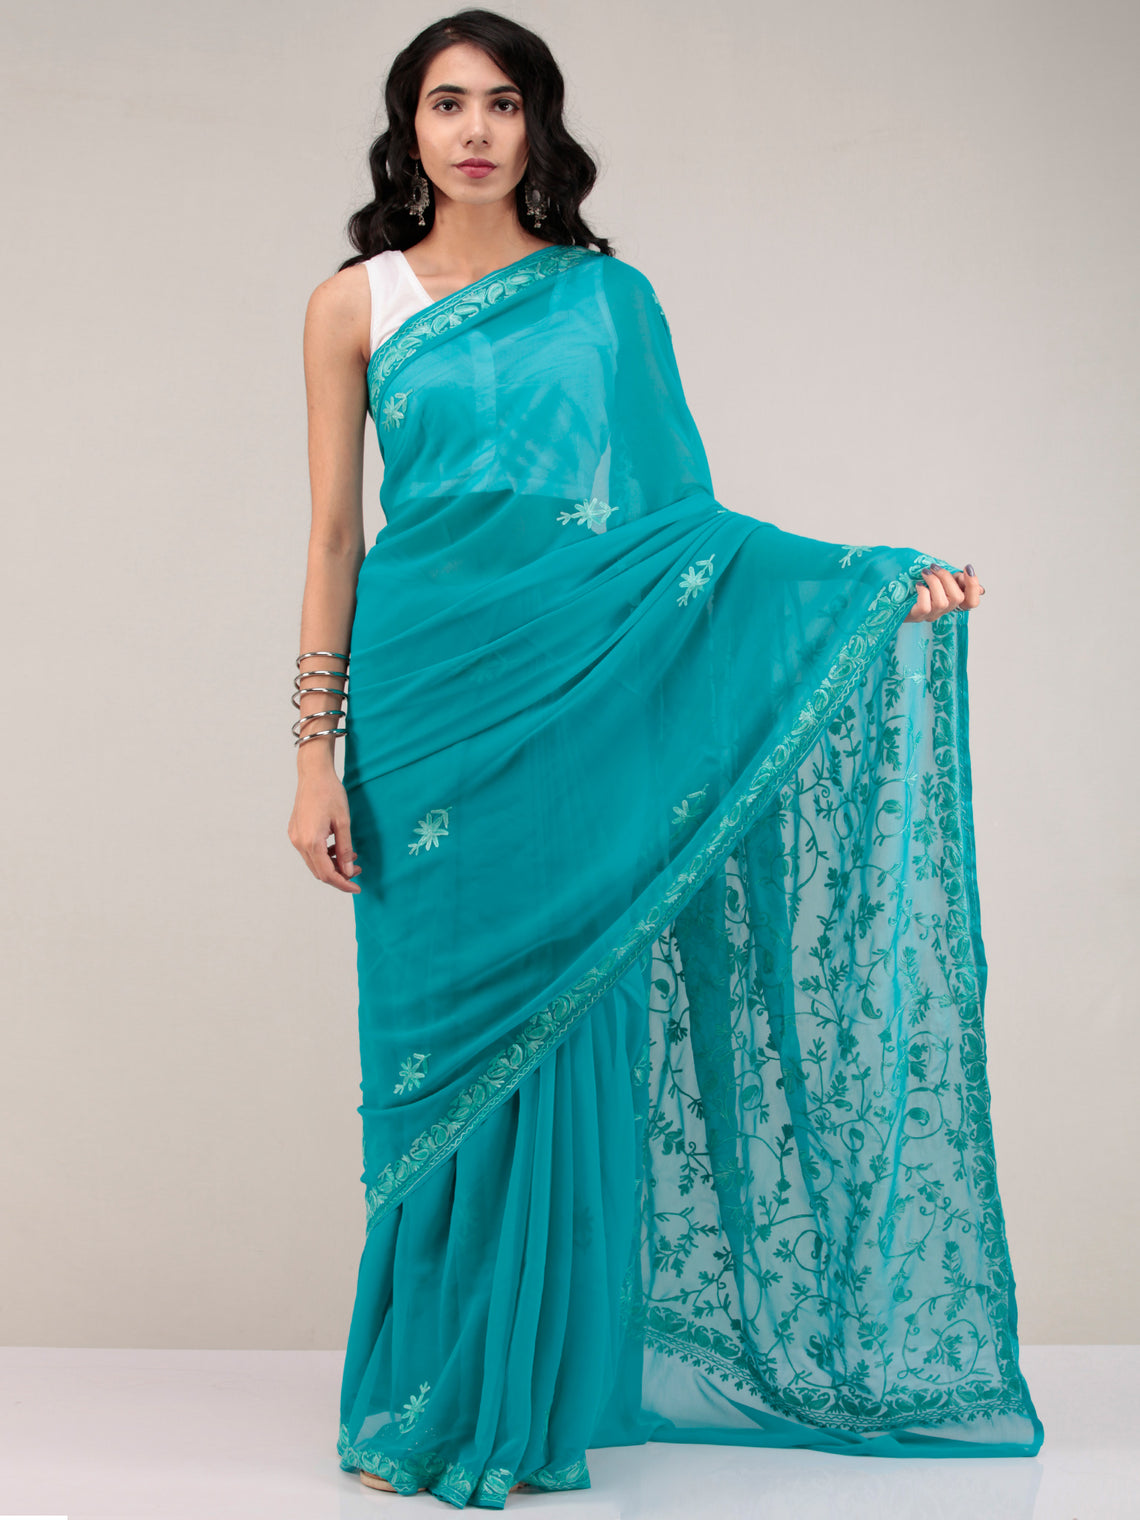 Green Aari Embroidered Georgette Saree From Kashmir - S031704638